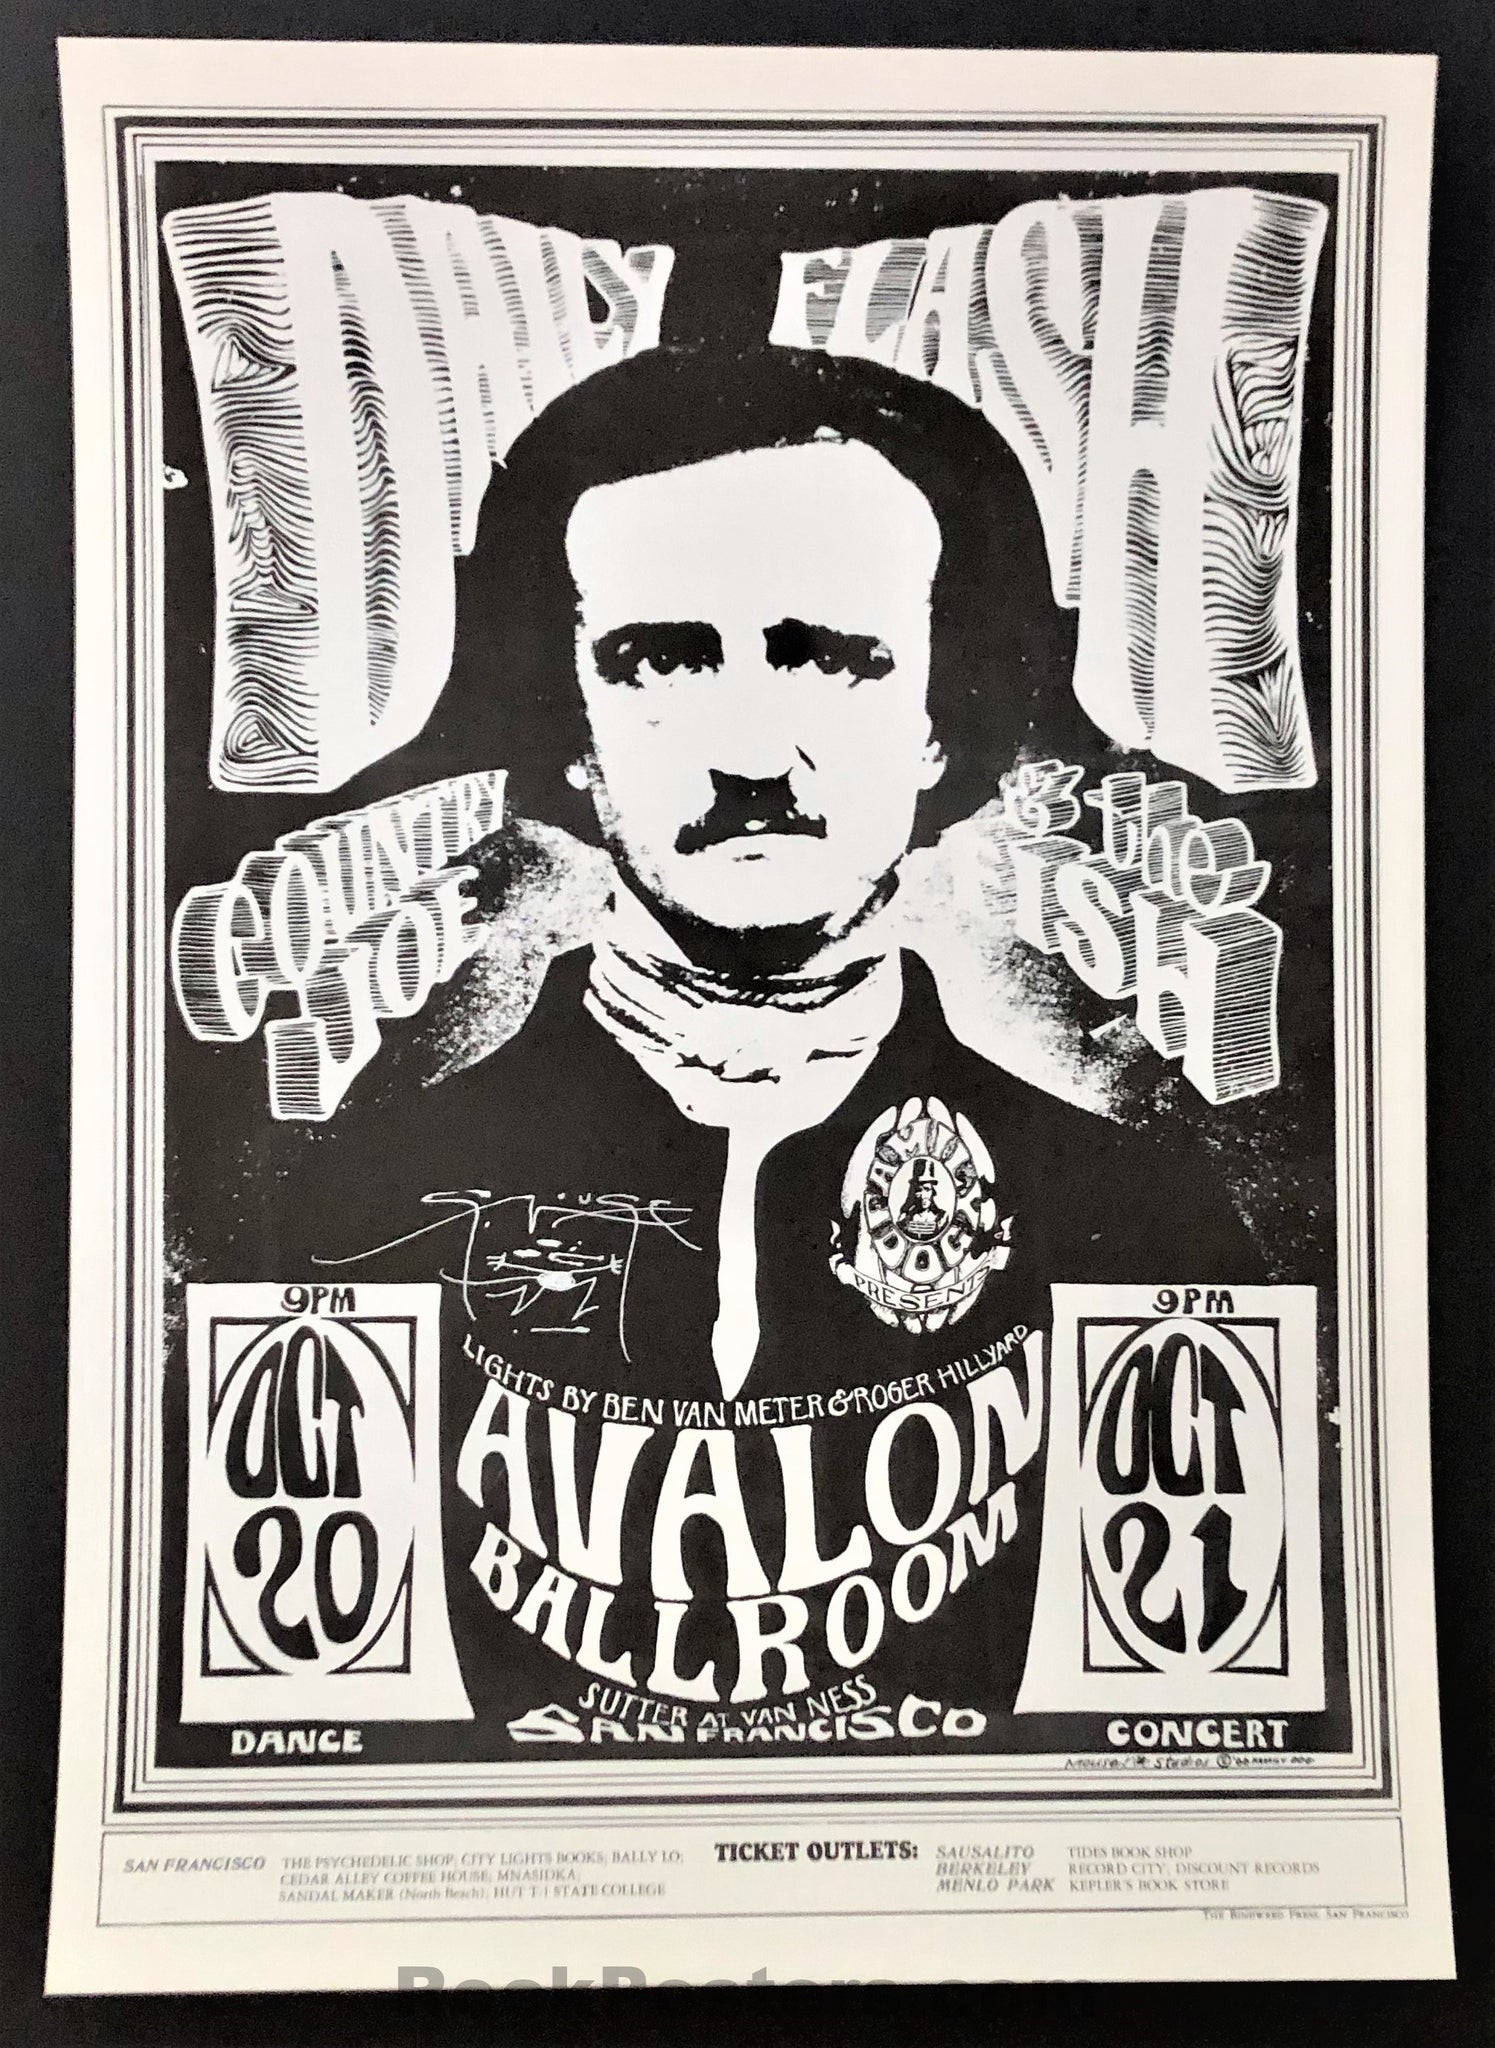 AUCTION - FD-31 - Country Joe & the Fish - 1966 Poster - Stanley Mouse Signed  - Avalon Ballroom - Mint